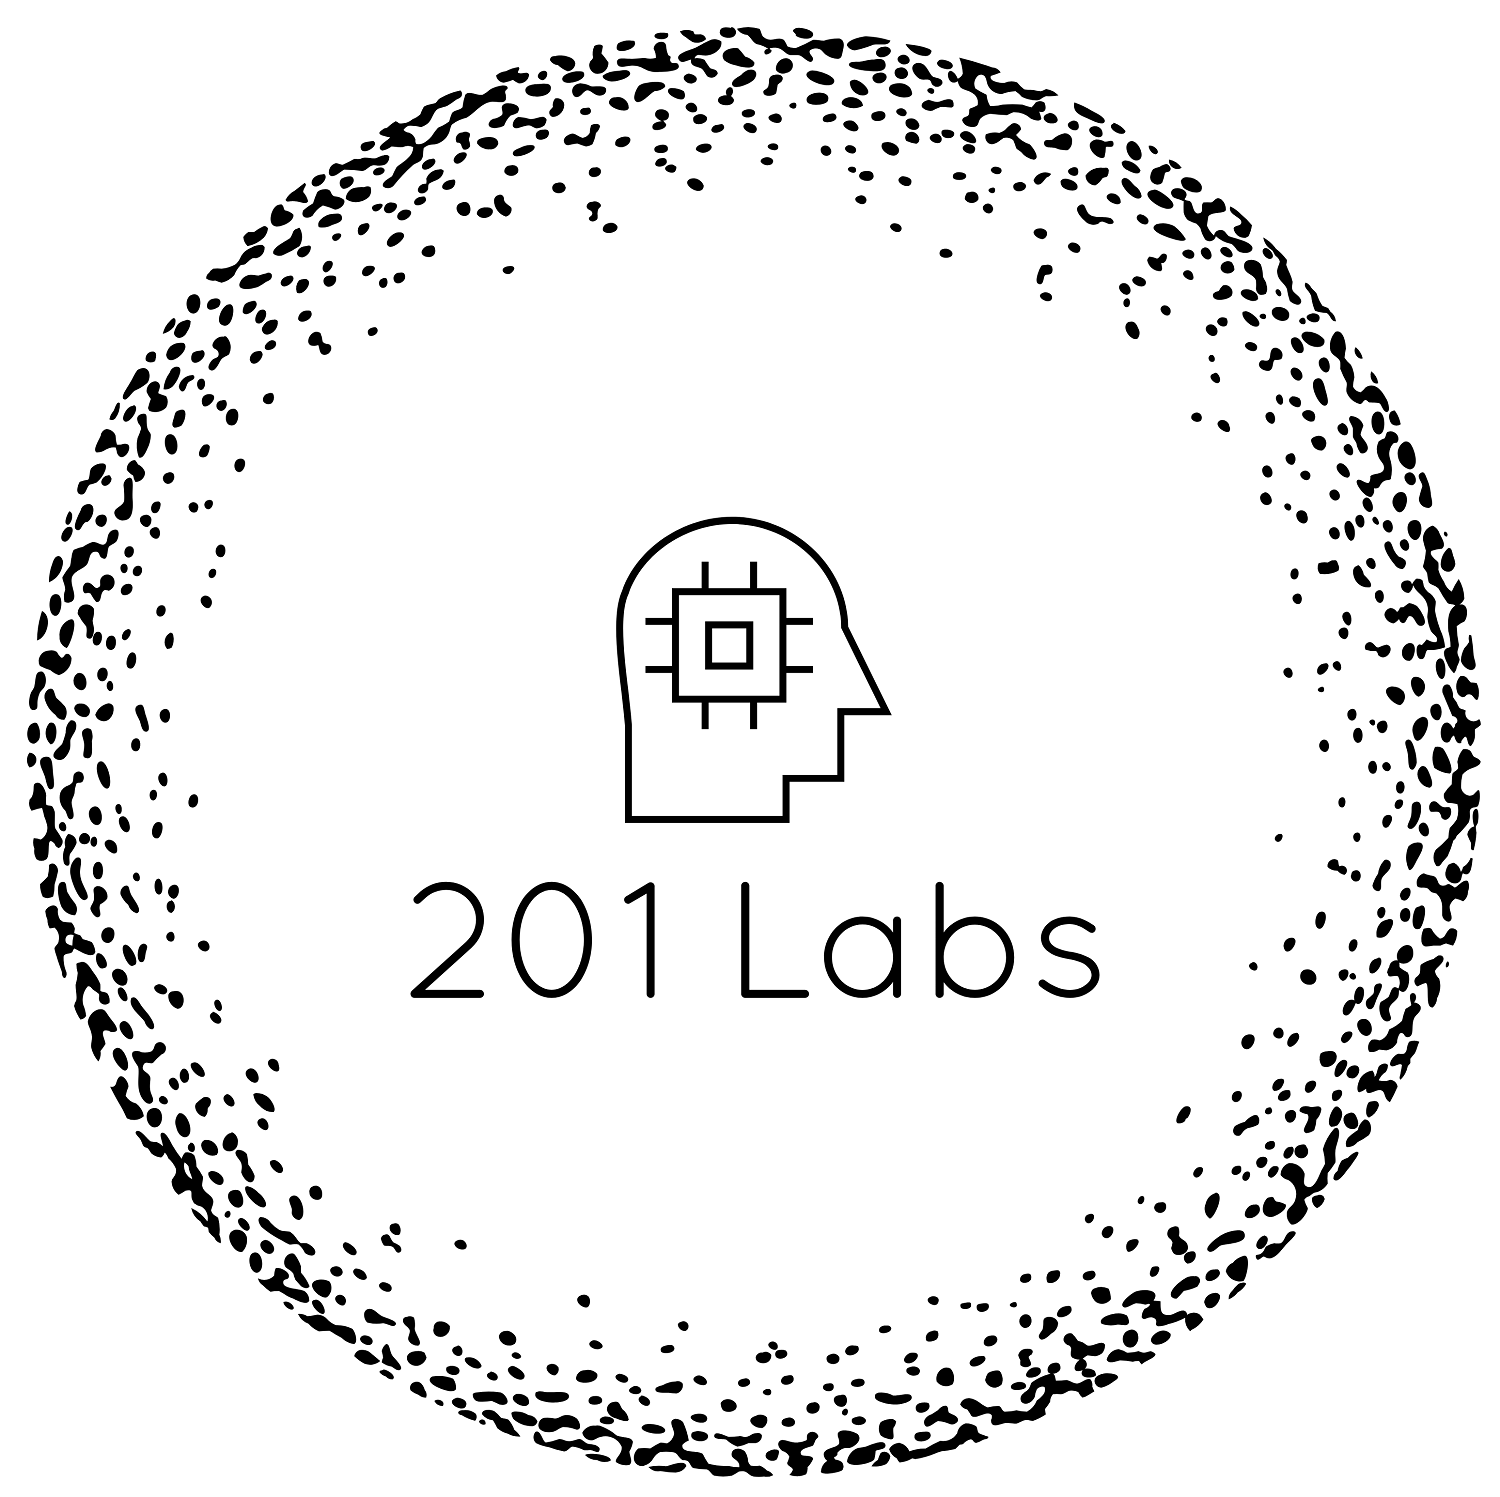 201 Labs image